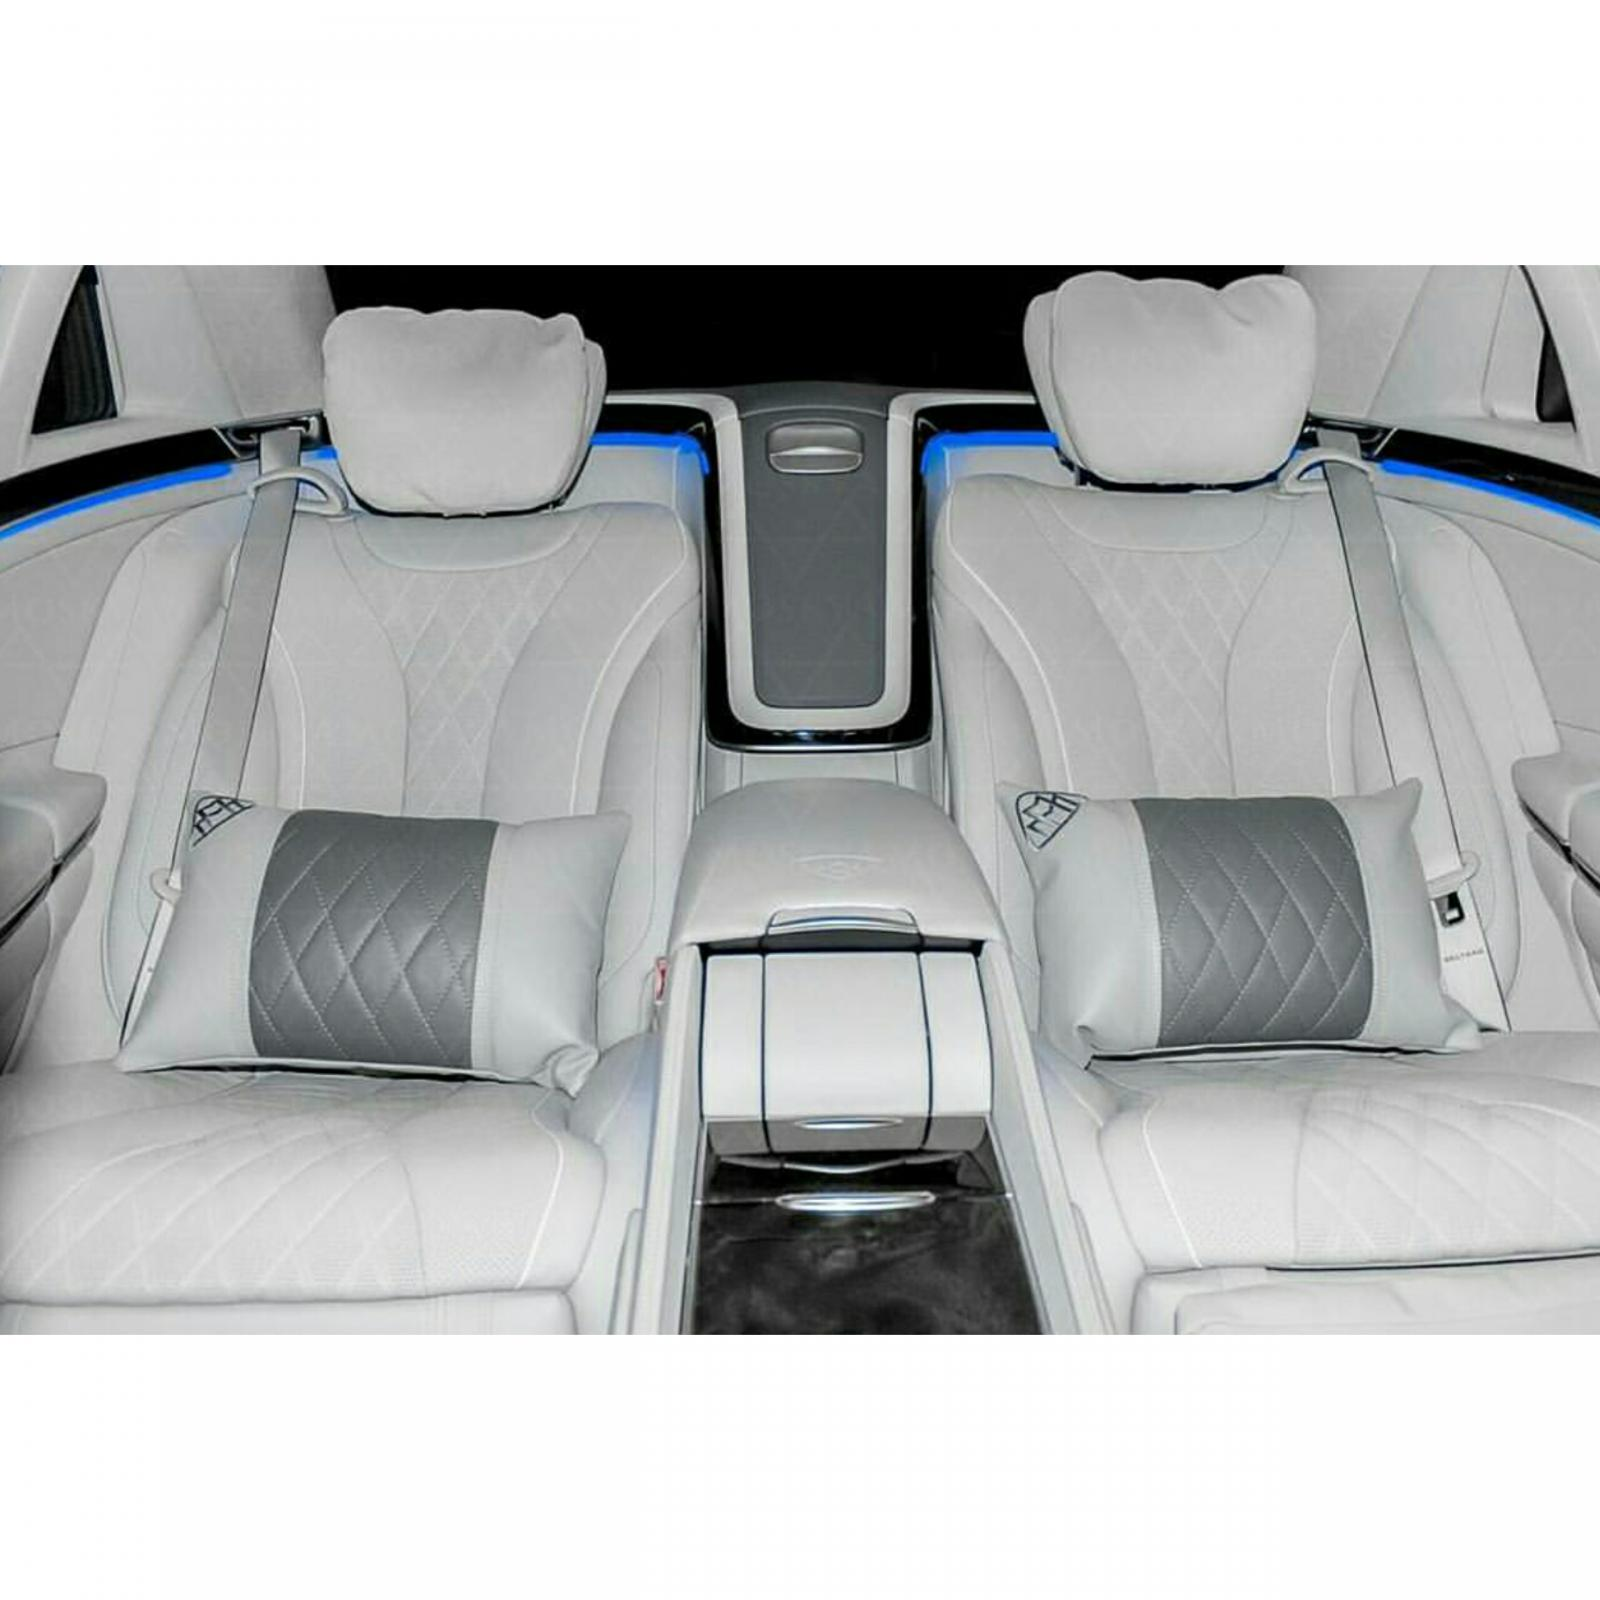 Mercedes S17 S17 W17 Maybach Custom Leather Floor Mats w ...